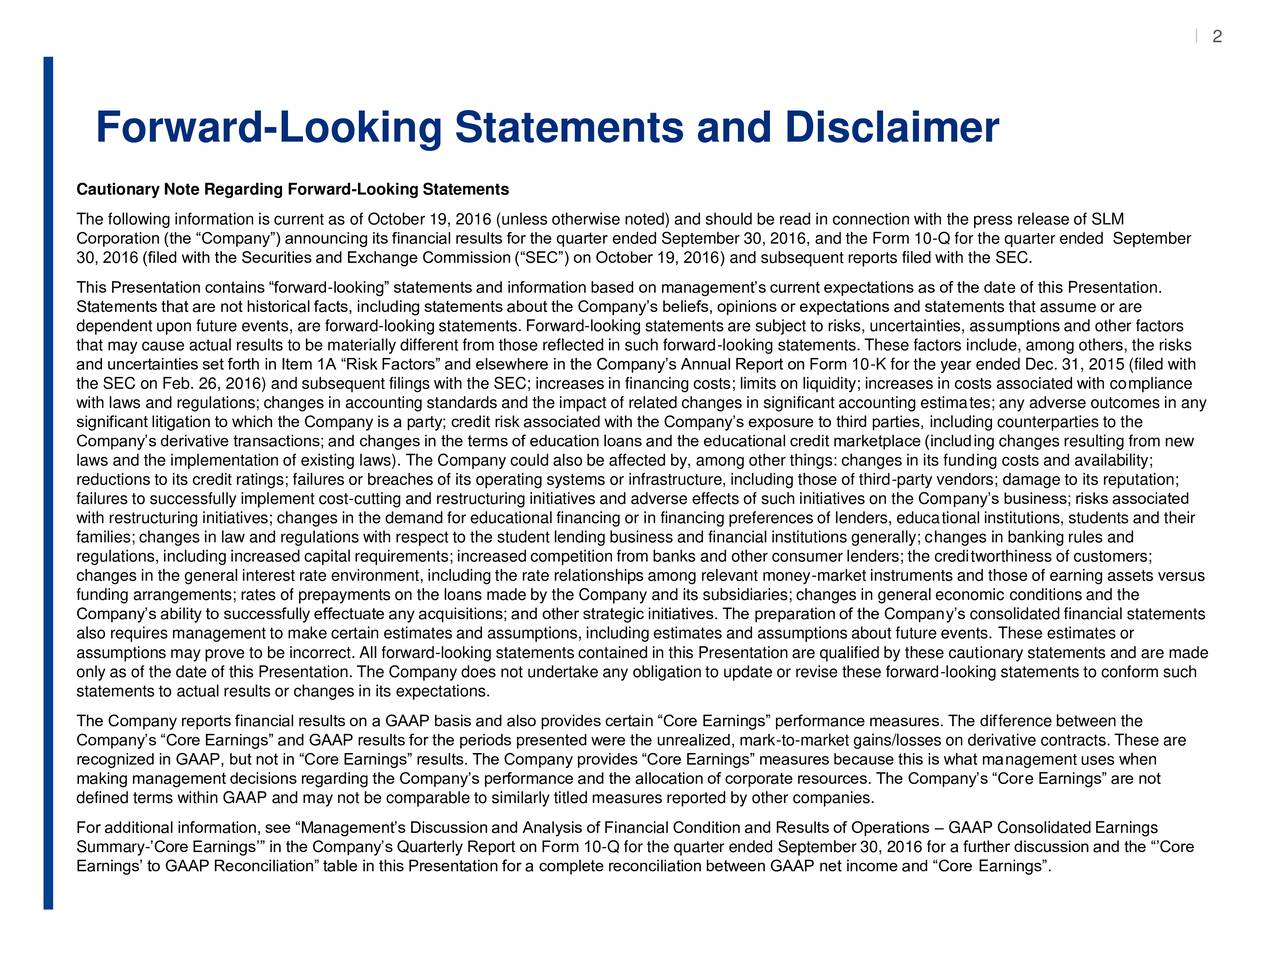 2 Forward-Looking Statements and Disclaimer Cautionary Note Regarding Forward-Looking Statements The following information is current as of October 19, 2016 (unless otherwise noted) and should be read in connection with the press release of SLM Corporation (the Company) announcing its financial results for the quarter ended September 30, 2016, and the Form 10-Q for the quarter ended September 30, 2016 (filed with the Securities and Exchange Commission (SEC) on October 19, 2016) and subsequent reports filed with the SEC. This Presentation contains forward-looking statements and information based on managements current expectations as of the date of this Presentation. Statements that are not historical facts, including statements about the Companys beliefs, opinions or expectations and statements that assume or are dependent upon future events, are forward-looking statements. Forward-looking statements are subject to risks, uncertainties, assumptions and other factors that may cause actual results to be materially different from those reflected in such forward-looking statements. These factors include, among others, the risks and uncertainties set forth in Item 1A Risk Factors and elsewhere in the Companys Annual Report on Form 10-K for the year ended Dec. 31, 2015 (filed with the SEC on Feb. 26, 2016) and subsequent filings with the SEC; increases in financing costs; limits on liquidity; increases in costs associated with compliance with laws and regulations; changes in accounting standards and the impact of related changes in significant accounting estimates; any adverse outcomes in any significant litigation to which the Company is a party; credit risk associated with the Companys exposure to third parties, including counterparties to the Companys derivative transactions; and changes in the terms of education loans and the educational credit marketplace (including changes resulting from new laws and the implementation of existing laws). The Company could also be af